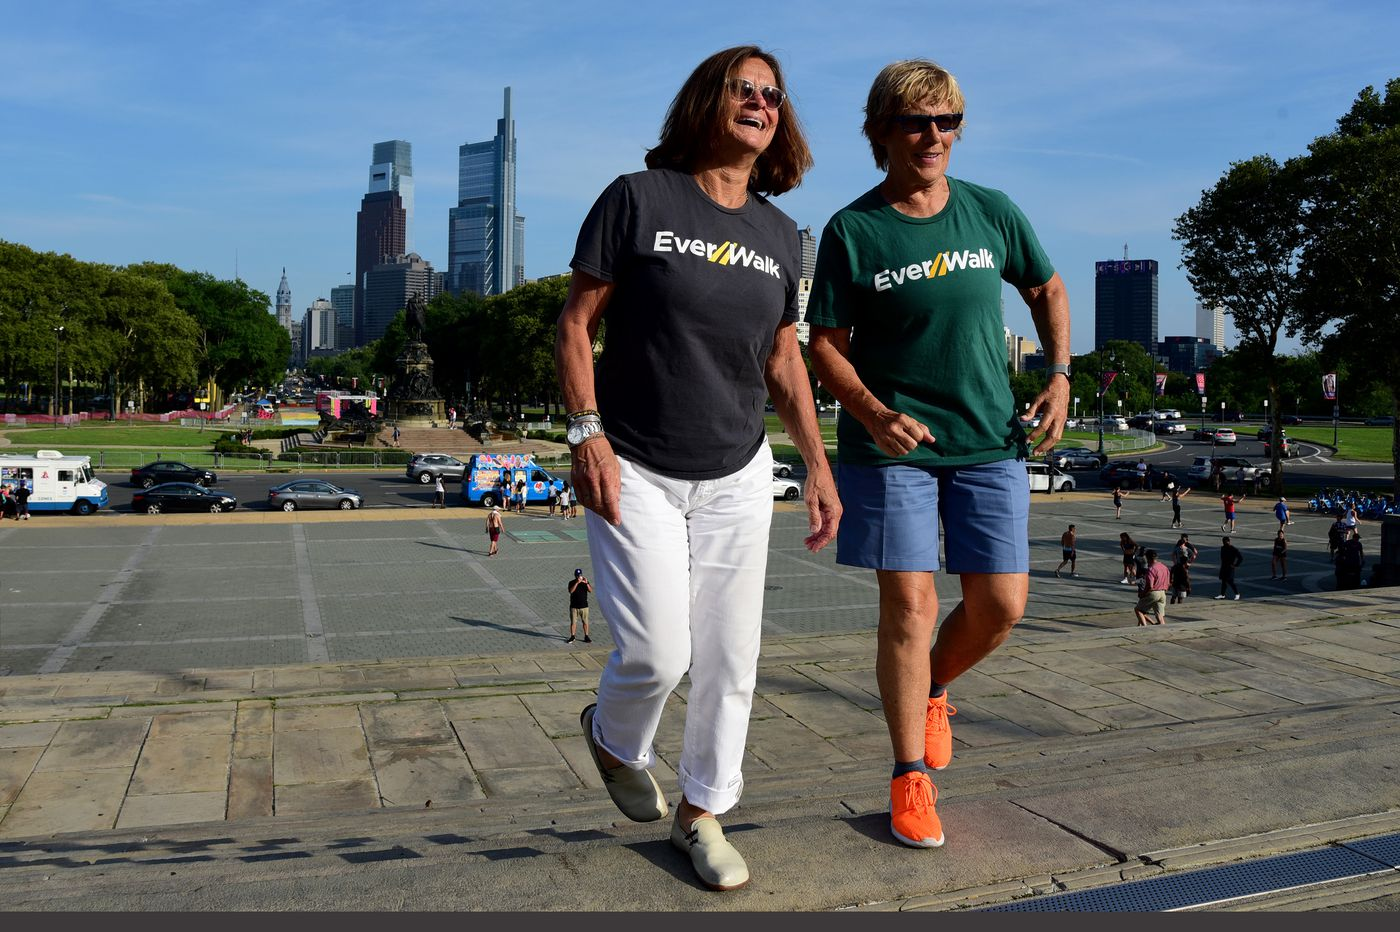 Legendary distance swimmer Diana Nyad takes to dry land to create a nation of walkers